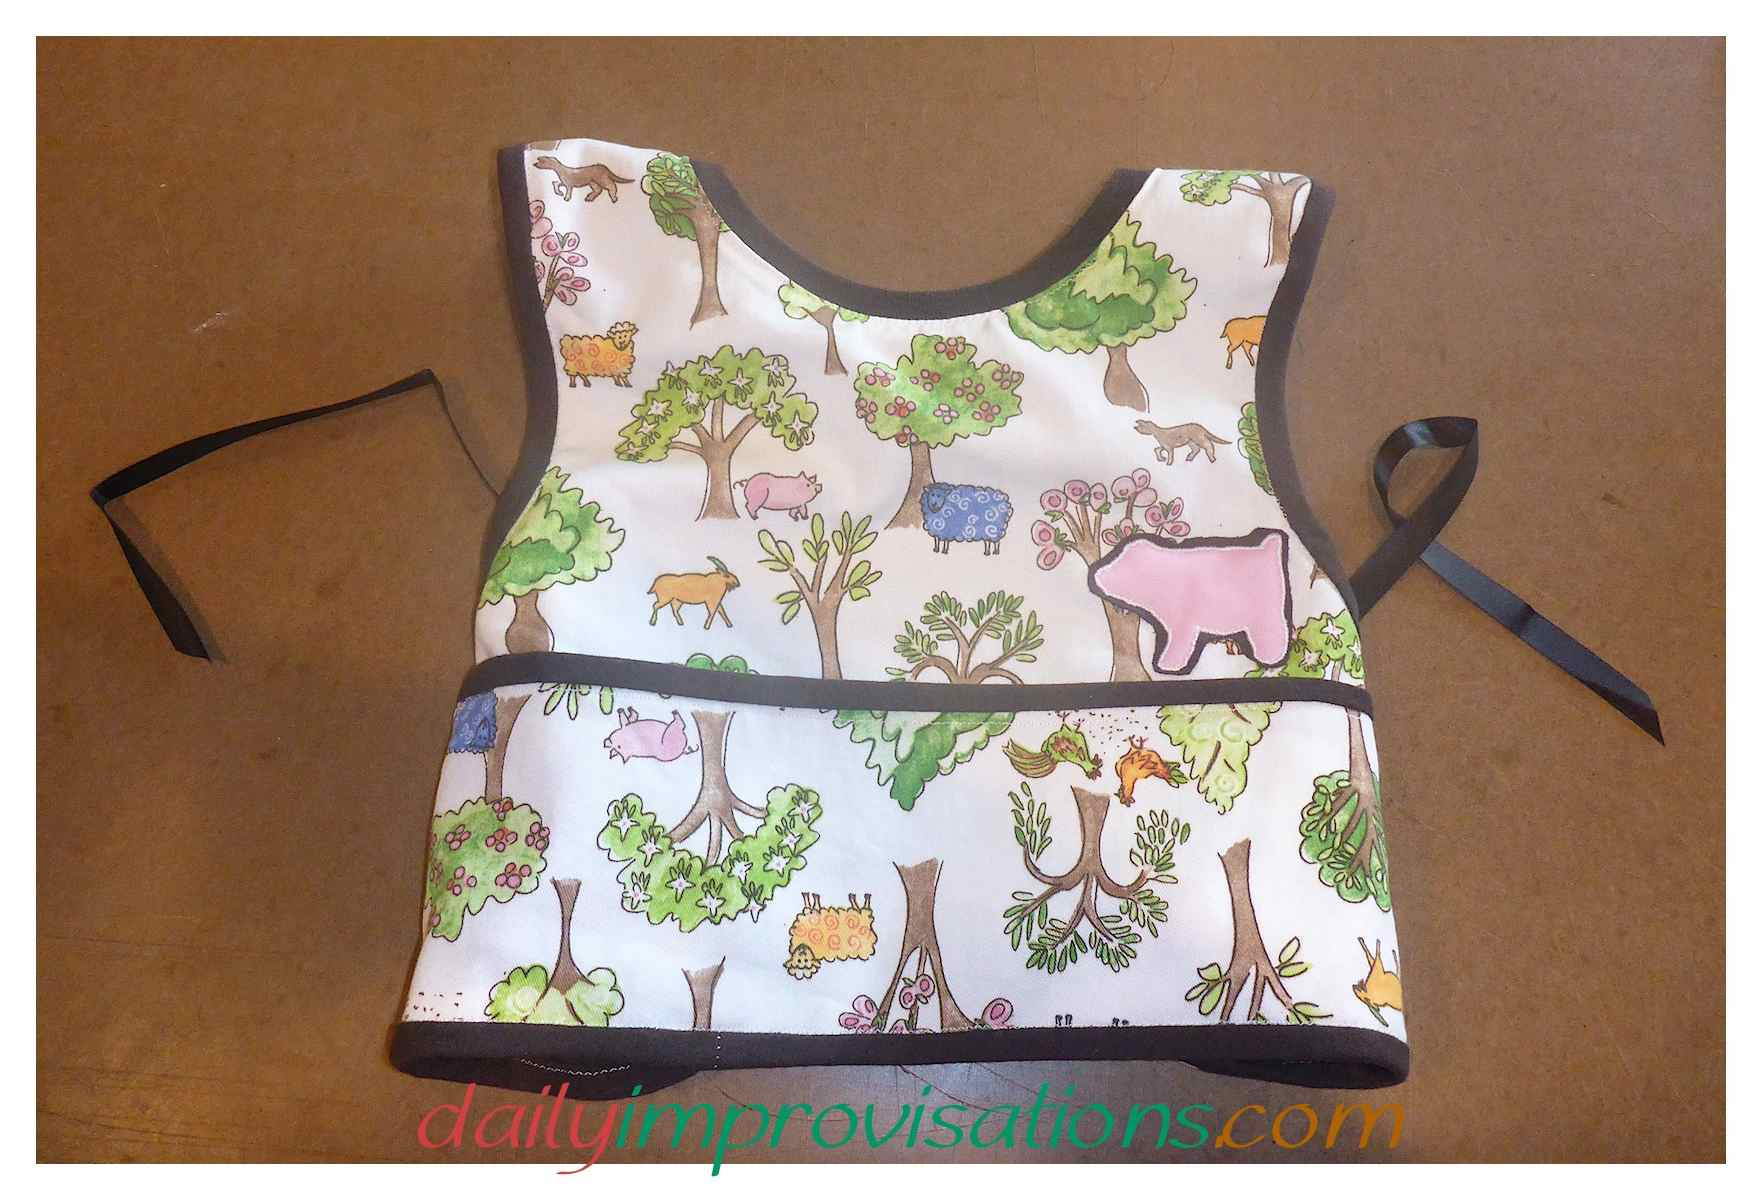 You searched for: baby shirt bib! Etsy is the home to thousands of handmade, vintage, and one-of-a-kind products and gifts related to your search. No matter what you're looking for or where you are in the world, our global marketplace of sellers can help you find unique and affordable options. Let's get started!